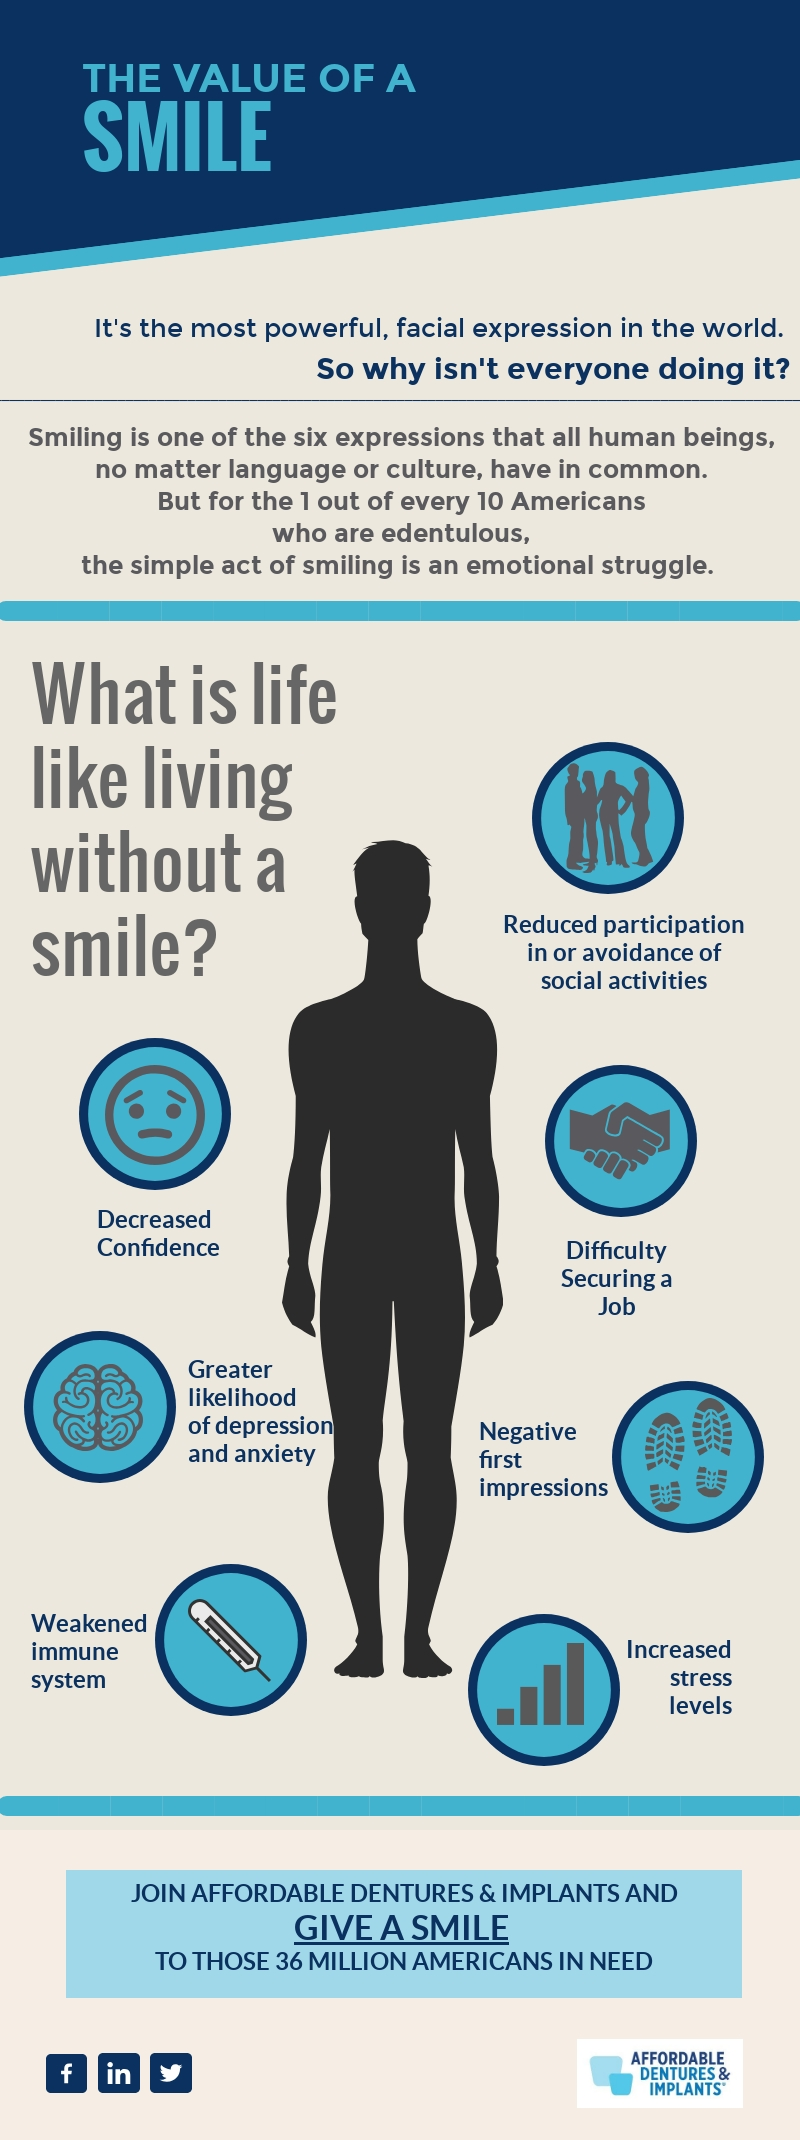 AC - The-Value-of-A-Smile-Infographic (updated 1719).jpg